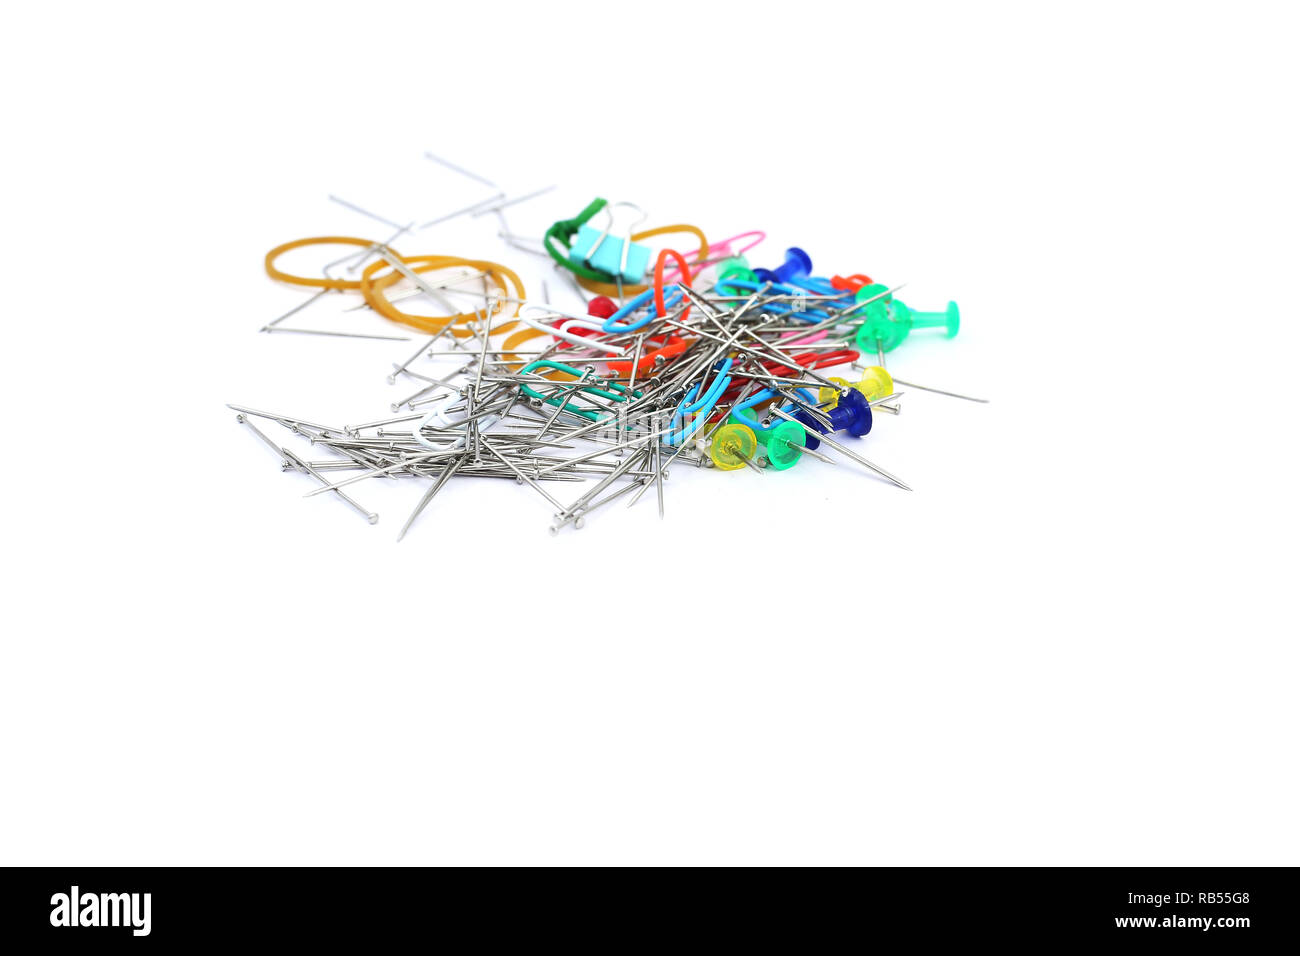 Picture of colorful paper pin and rubber band. Isolated on the white background. - Stock Image